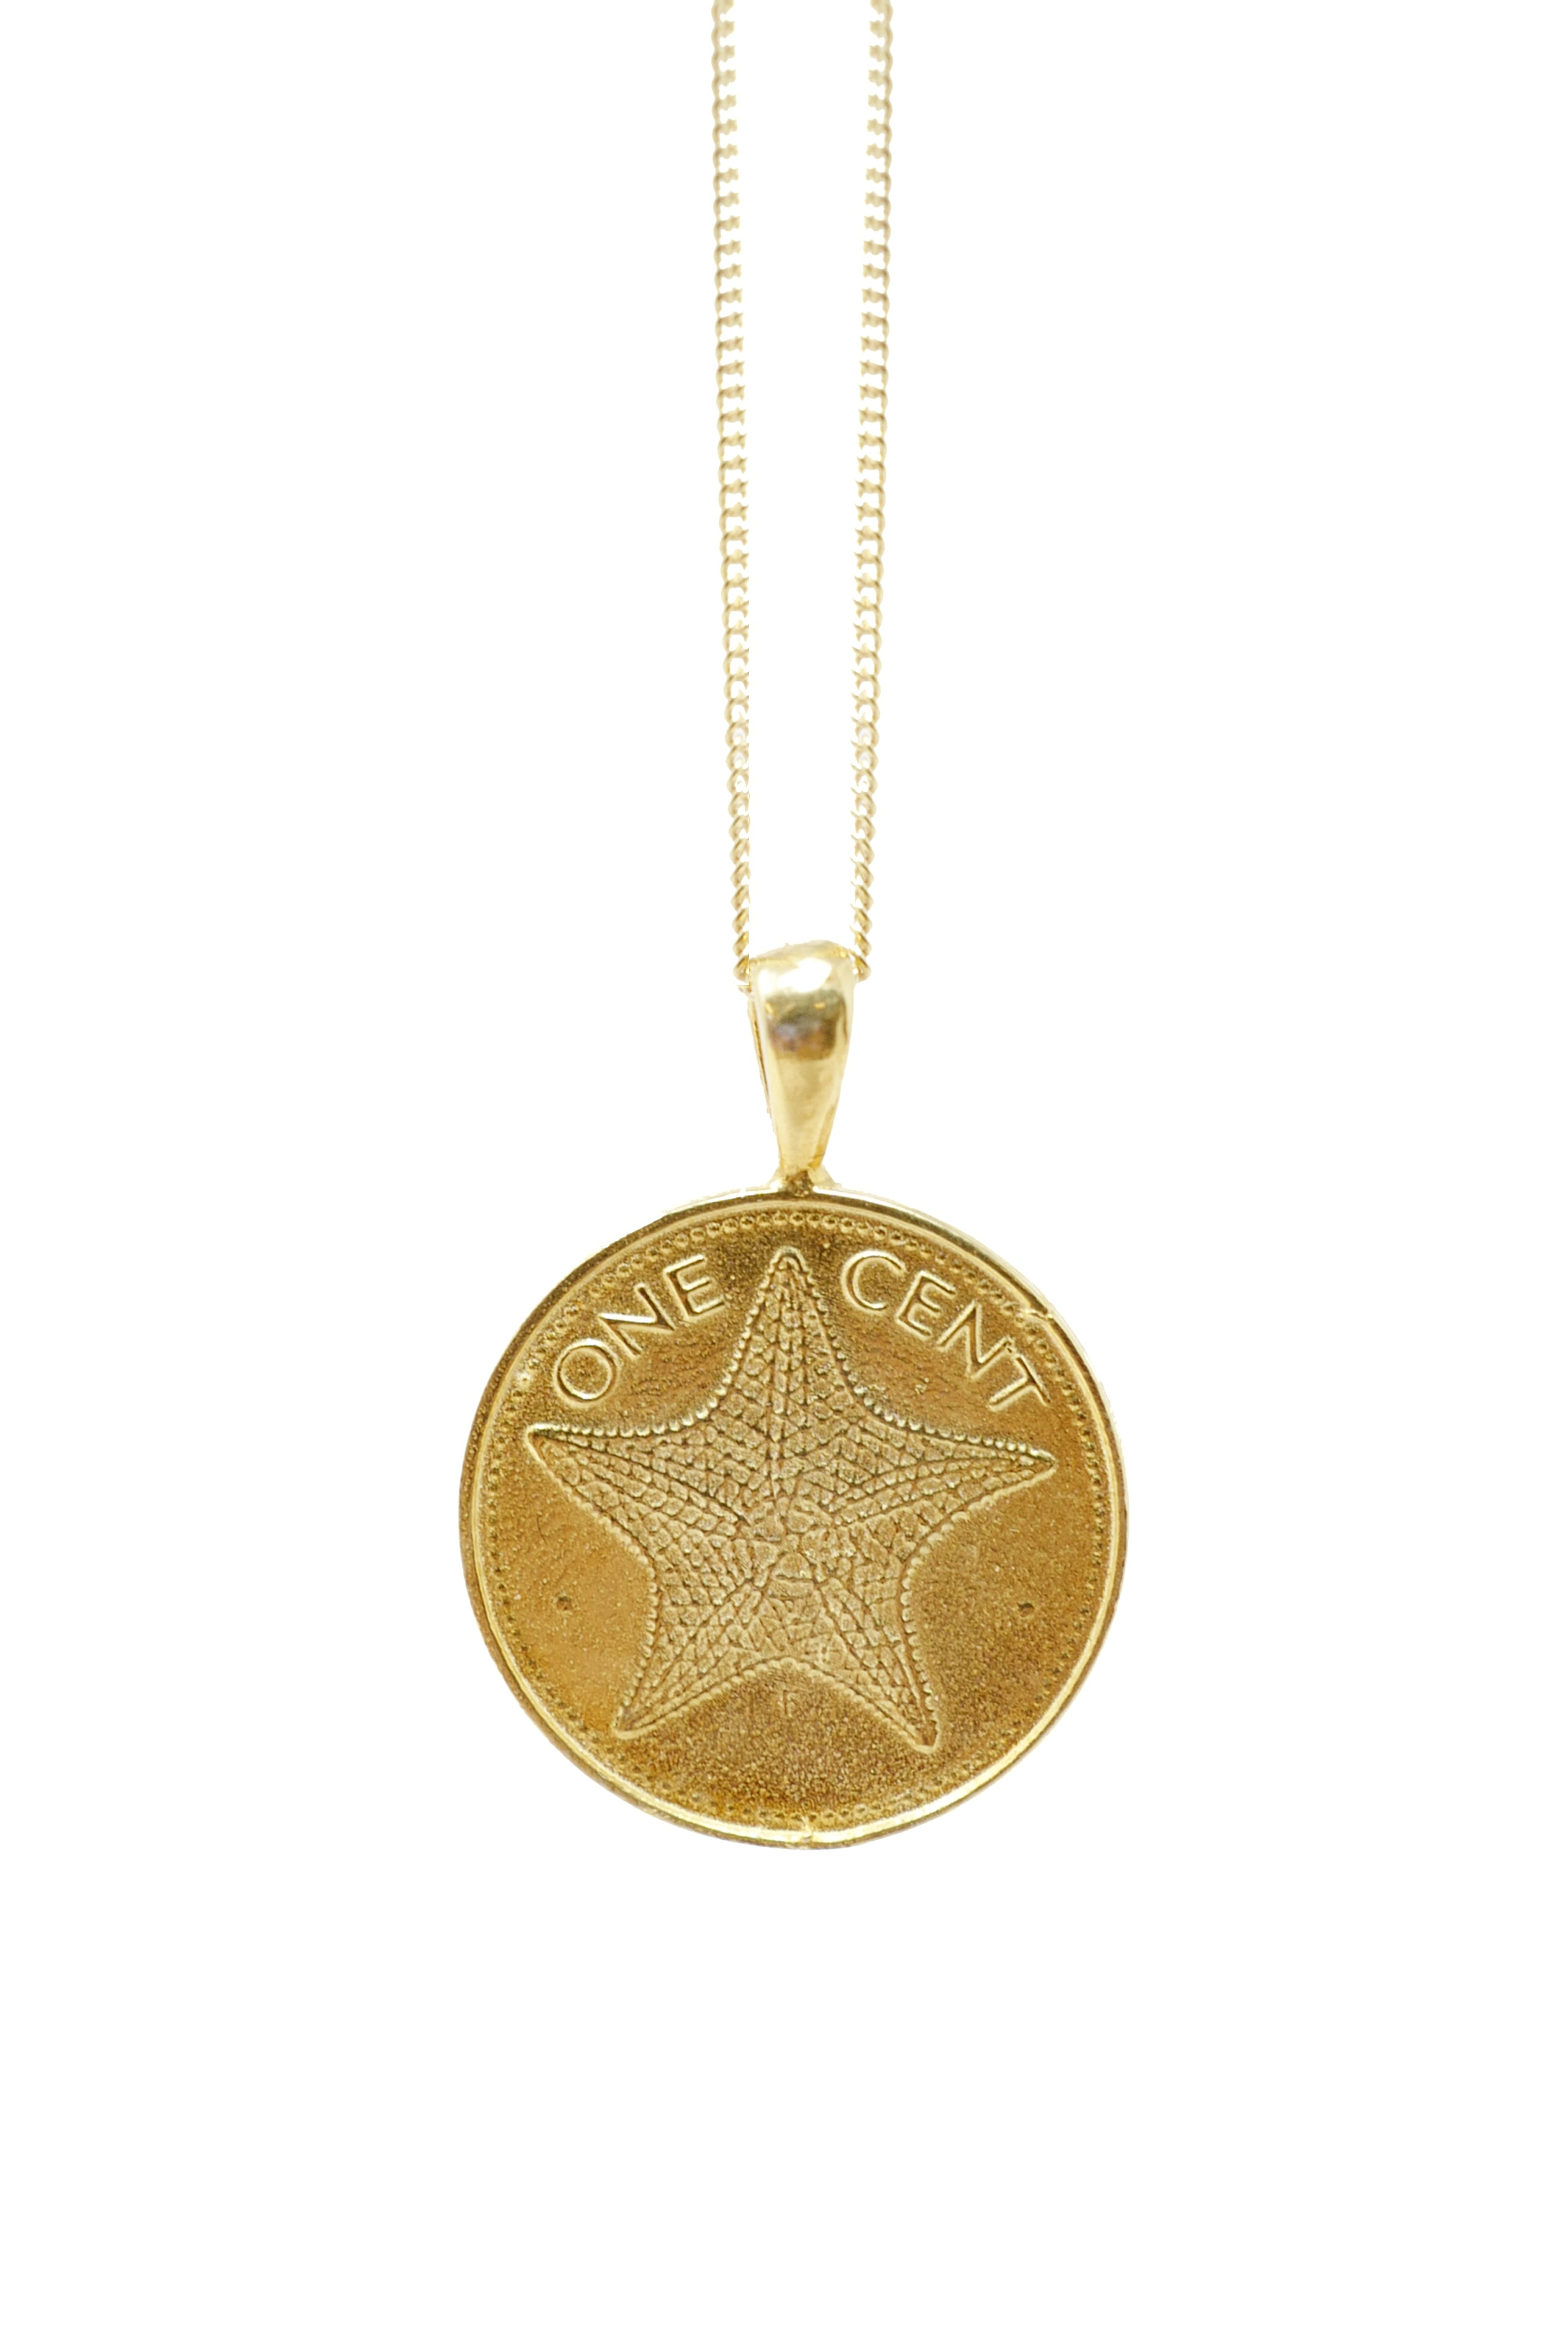 The BAHAMAS Starfish Coin Necklace